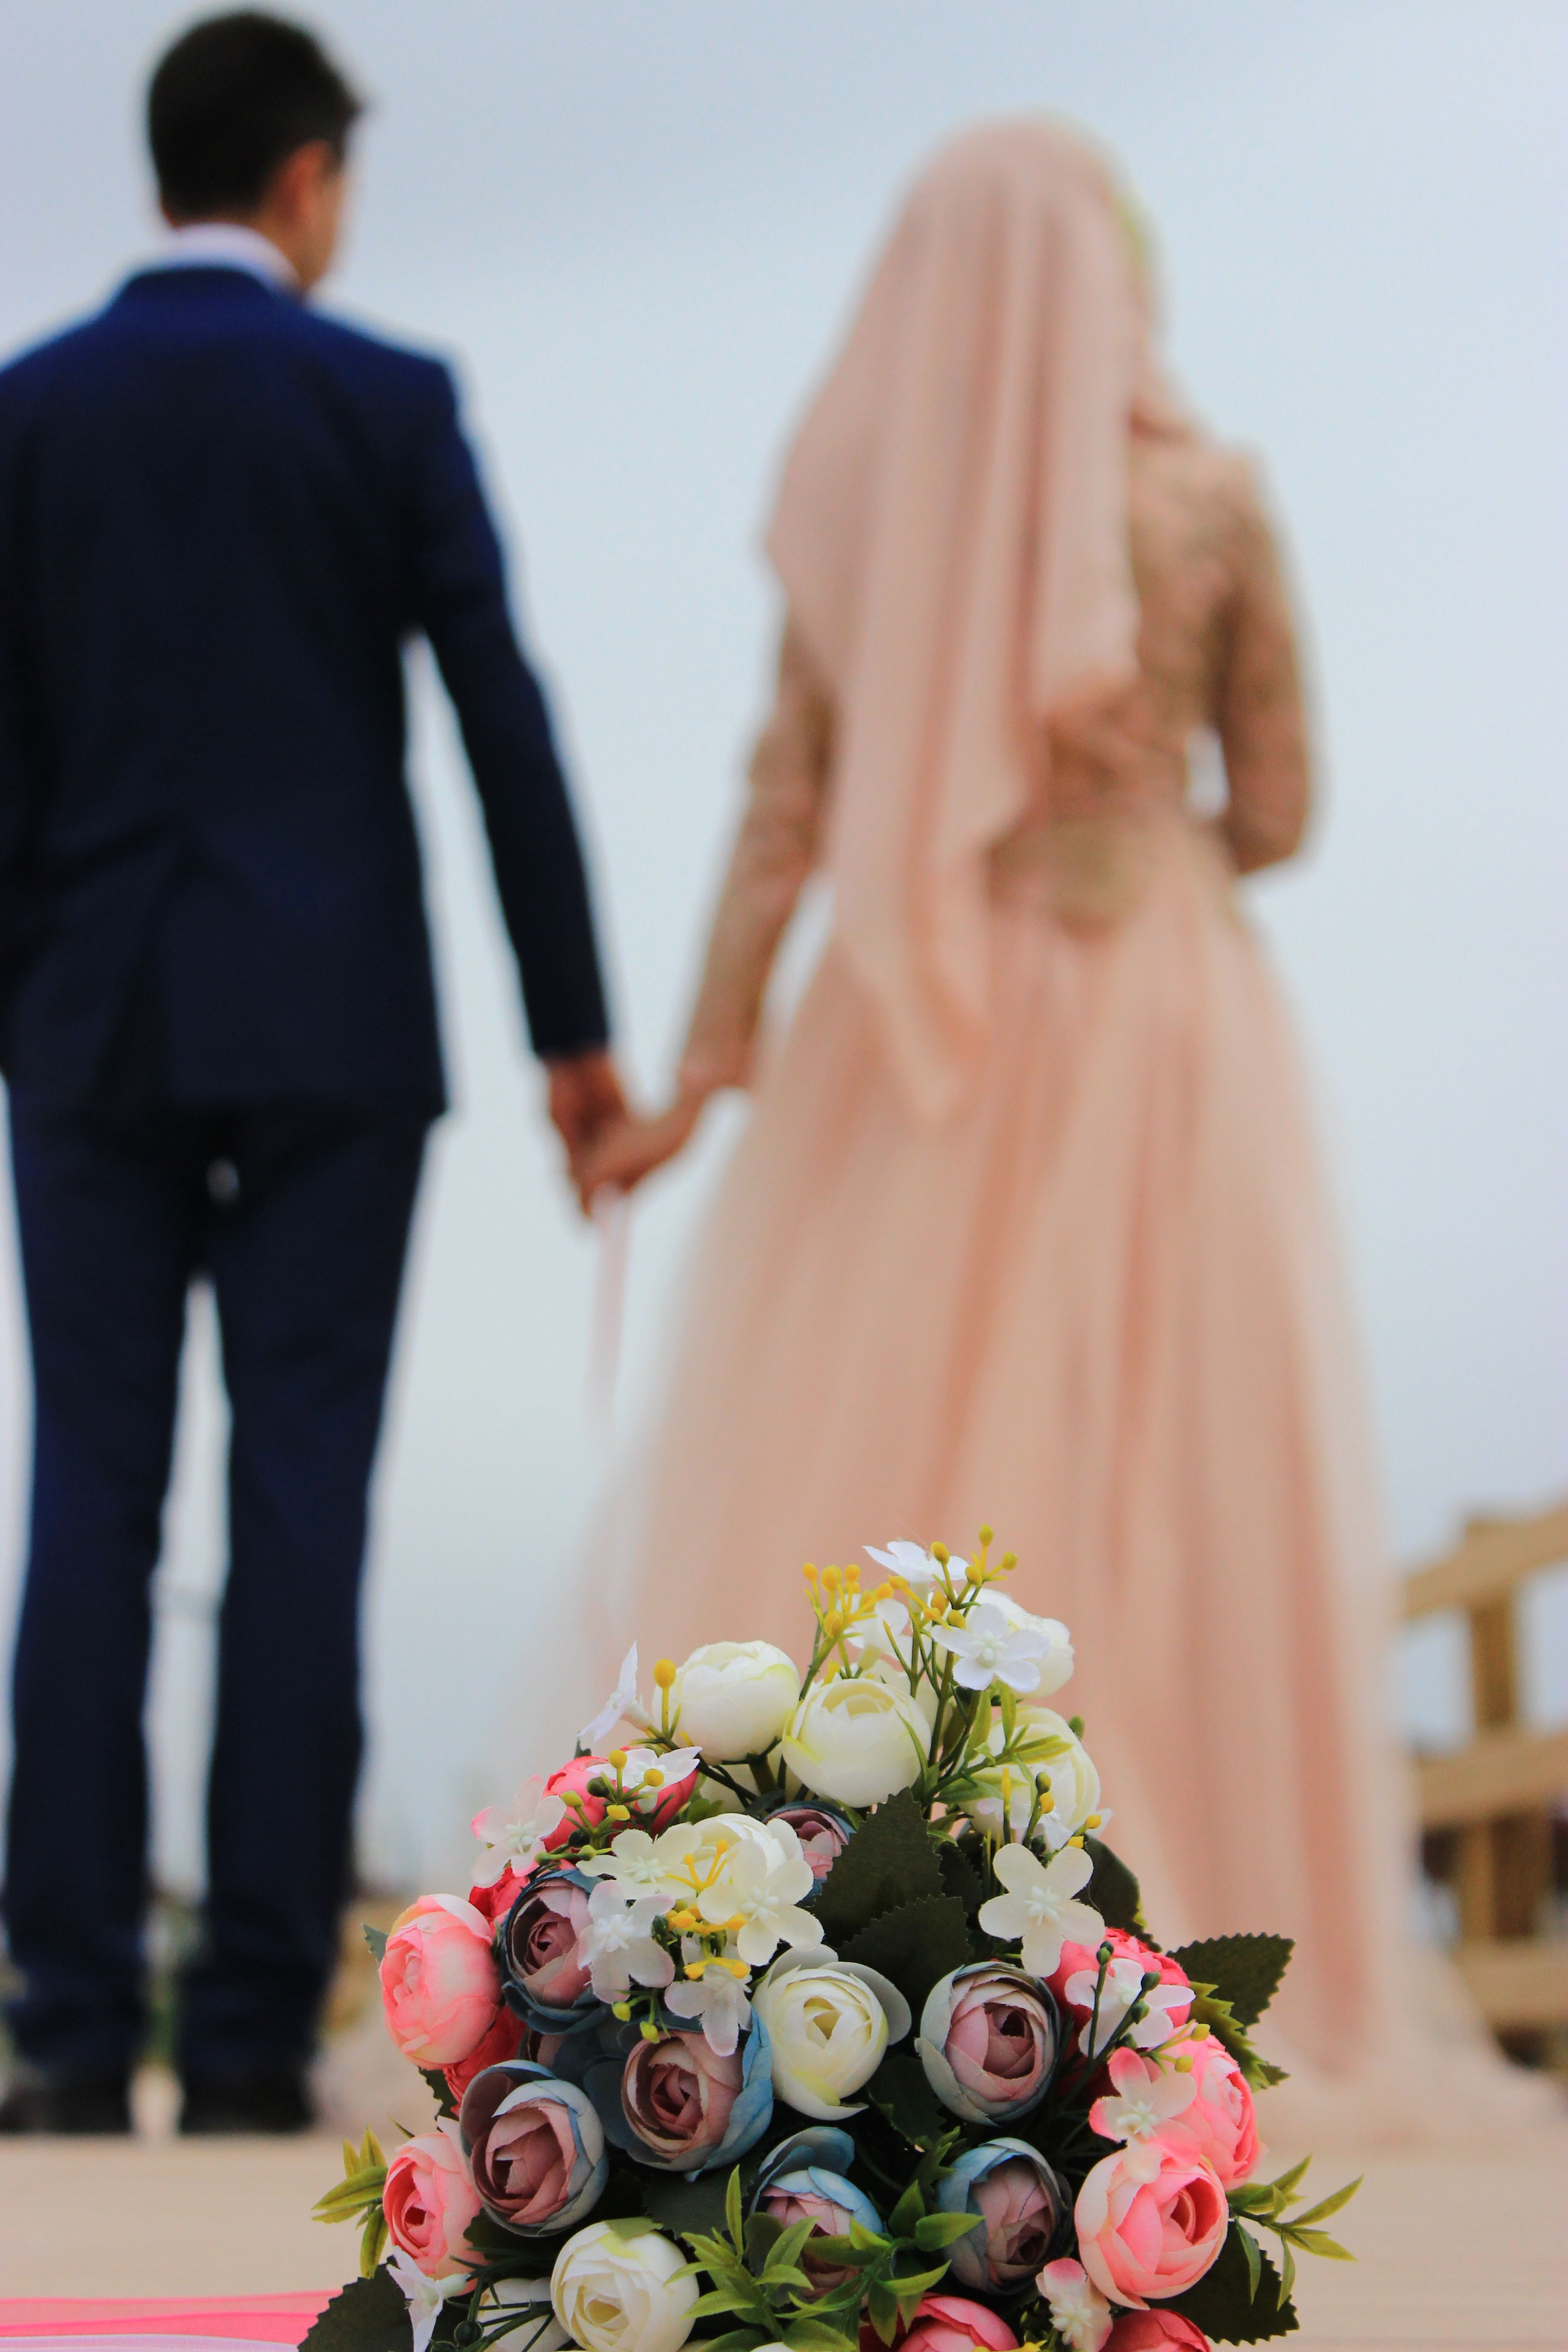 person, holding, indoors, lifestyles, focus on foreground, flower, part of, leisure activity, close-up, cropped, celebration, men, selective focus, creativity, tradition, art and craft